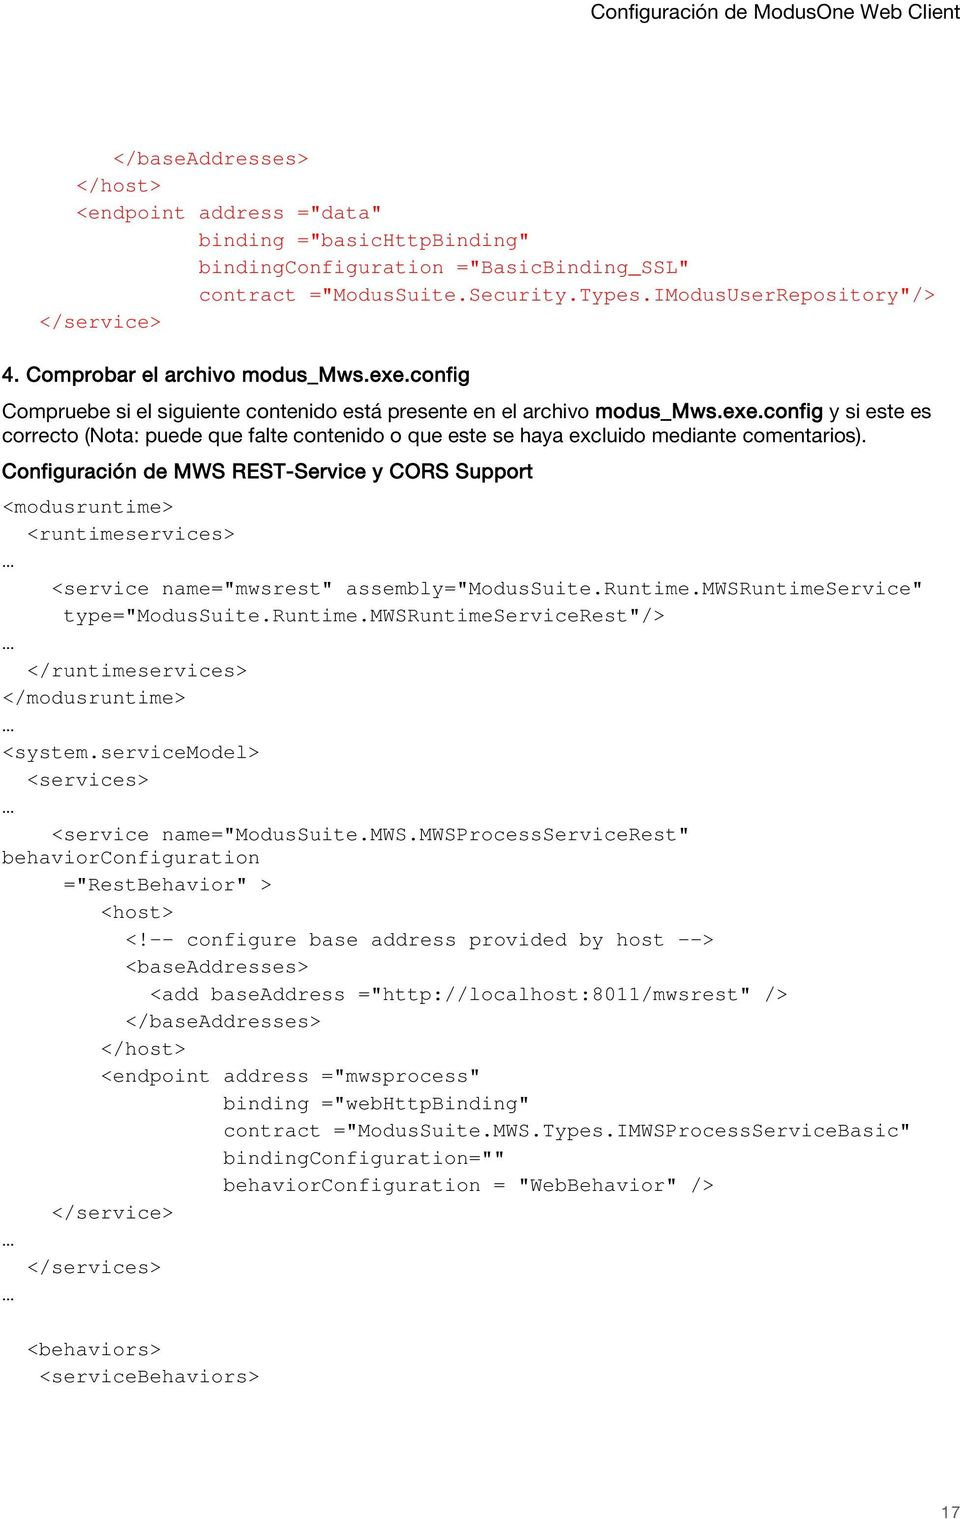 "Configuración de MWS REST-Service y CORS Support <modusruntime> <runtimeservices> <service name=""mwsrest"" assembly=""modussuite.runtime.mwsruntimeservice"" type=""modussuite.runtime.mwsruntimeservicerest""/> </runtimeservices> </modusruntime> <system."